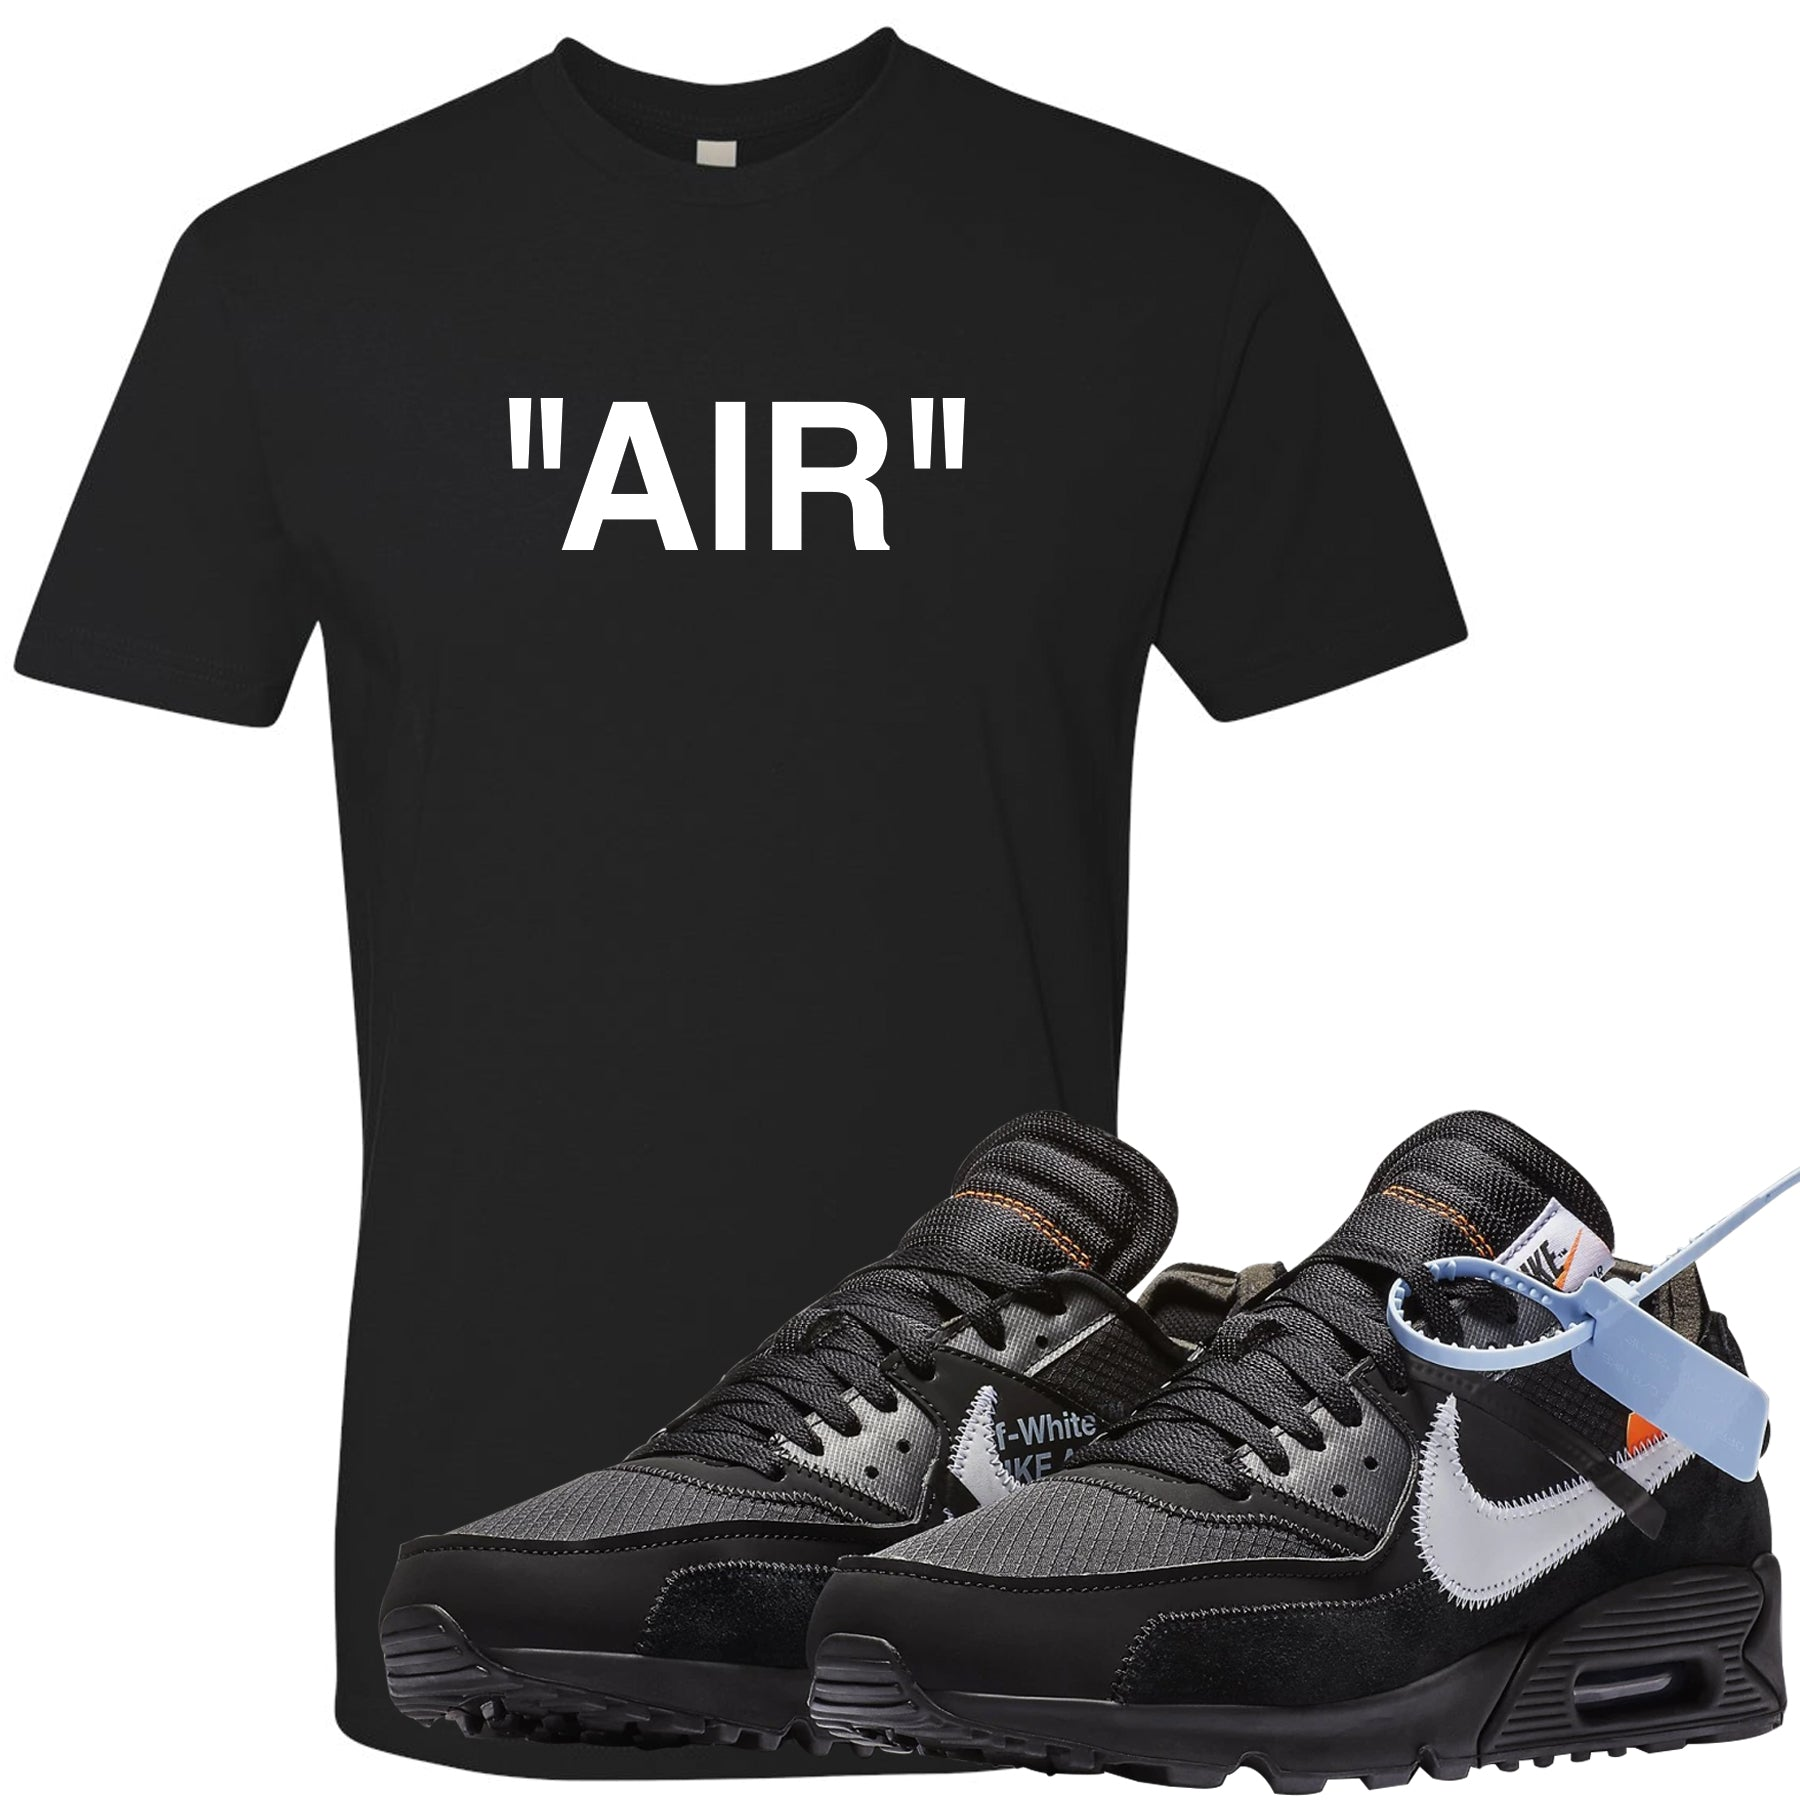 wholesale dealer ab143 e5a88 Air Max 90 OFF-WHITE Black Sneaker Matching